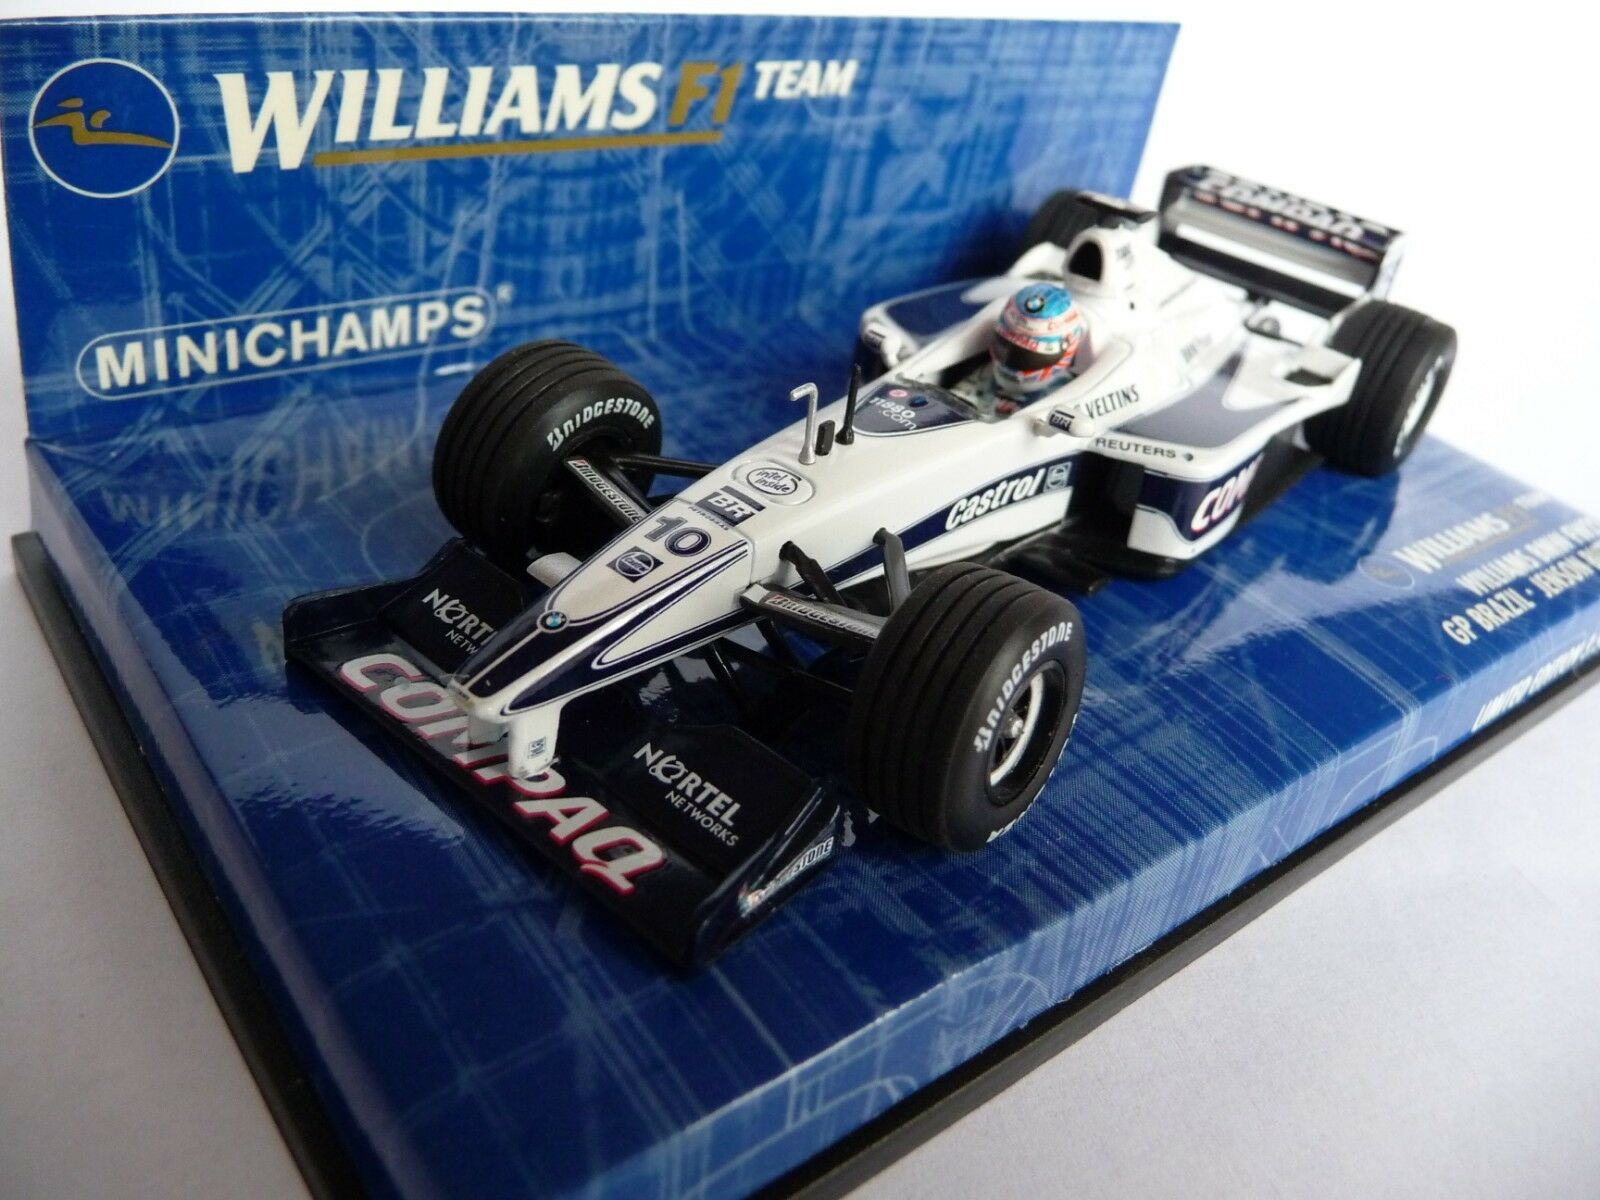 Minichamps 1:43 Williams BMW FW22 BRAZIL GP Jenson Button 000030